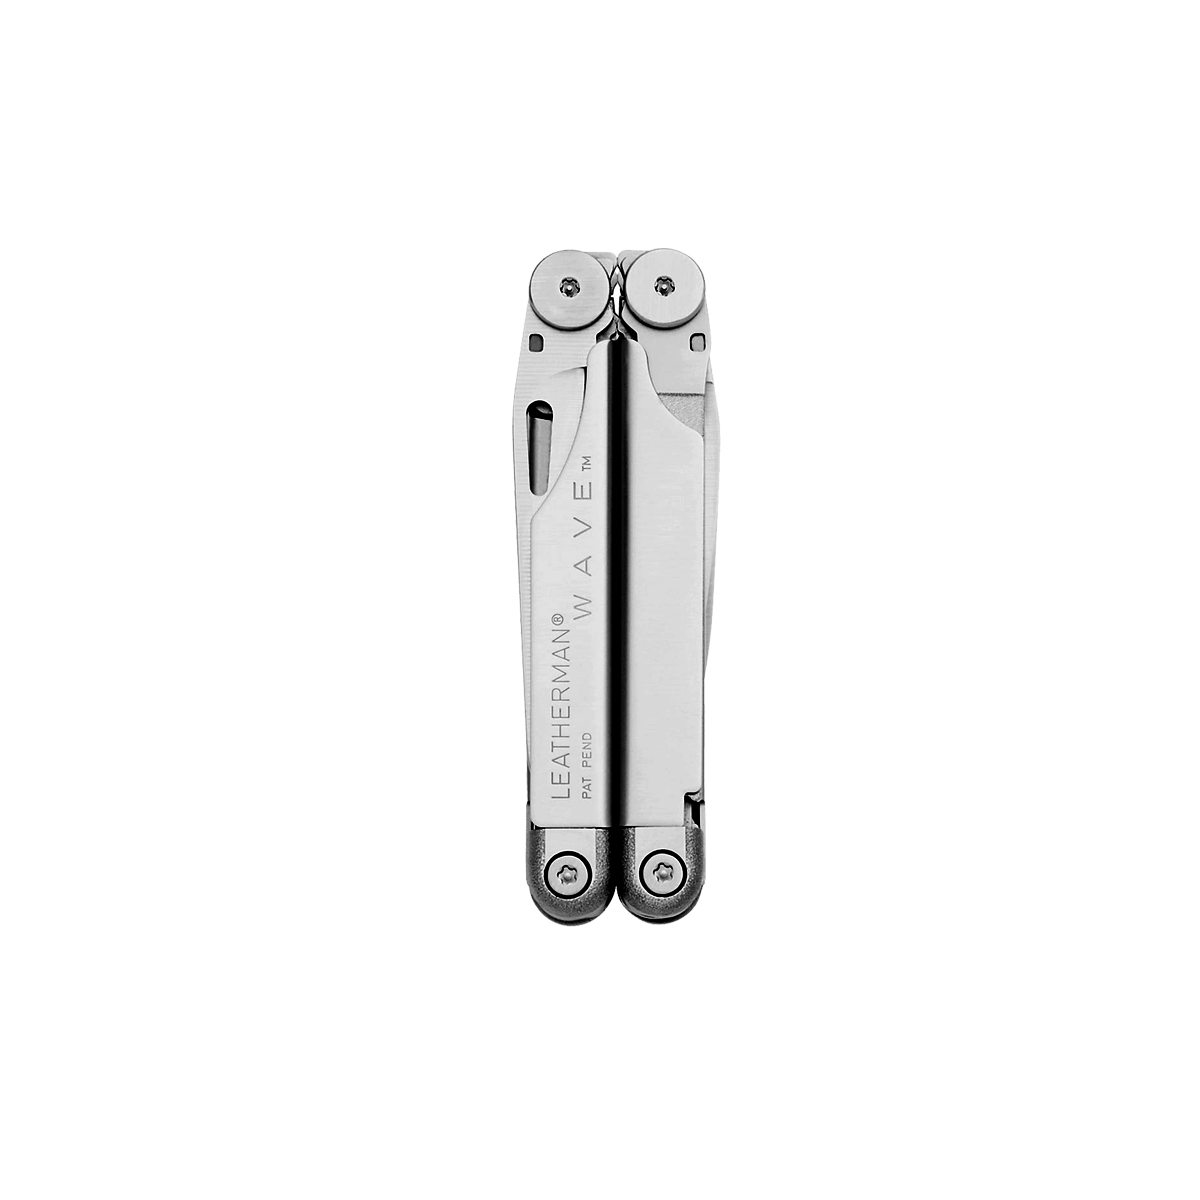 Leatherman original wave multi-tool, stainless steel, closed view